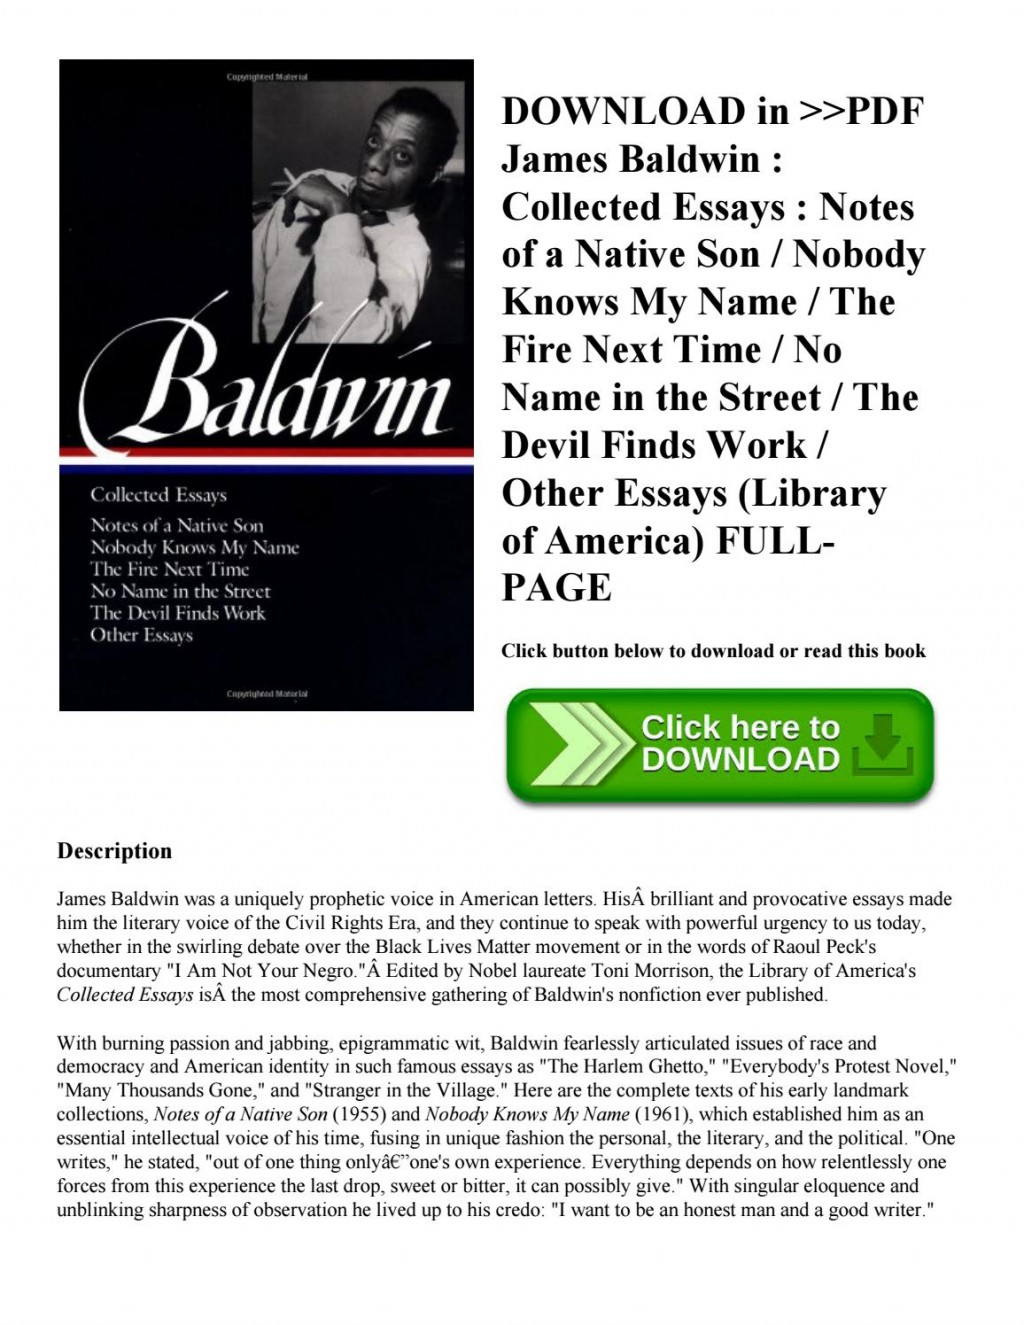 005 Essay Example James Baldwin Collected Essays Page 1 Wondrous Table Of Contents Ebook Google Books Large